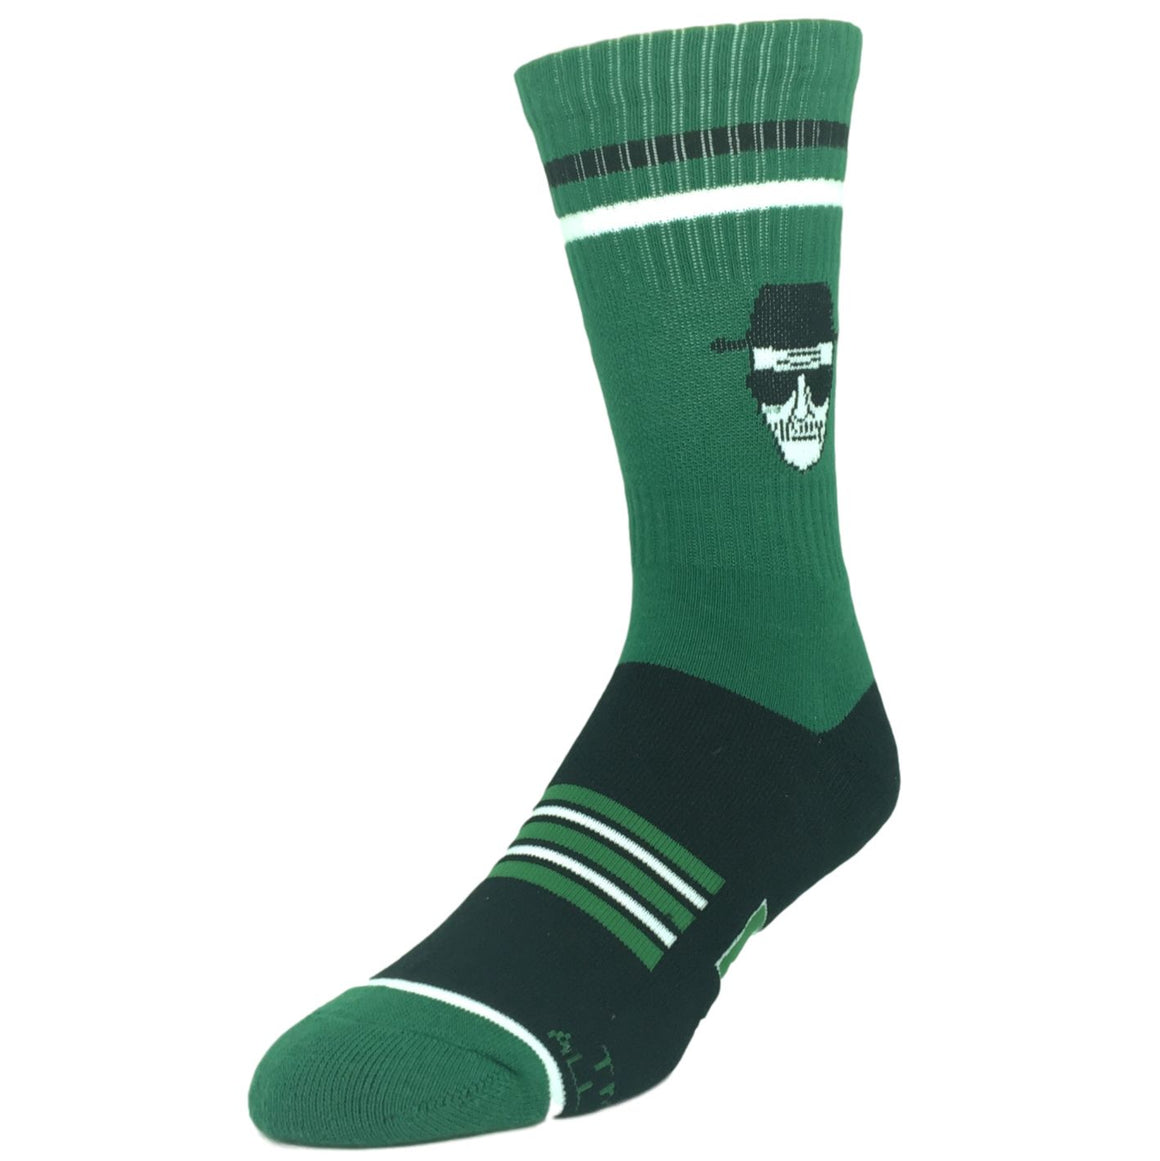 Breaking Bad Who is Heisenberg Socks by Odd Sox - The Sock Spot